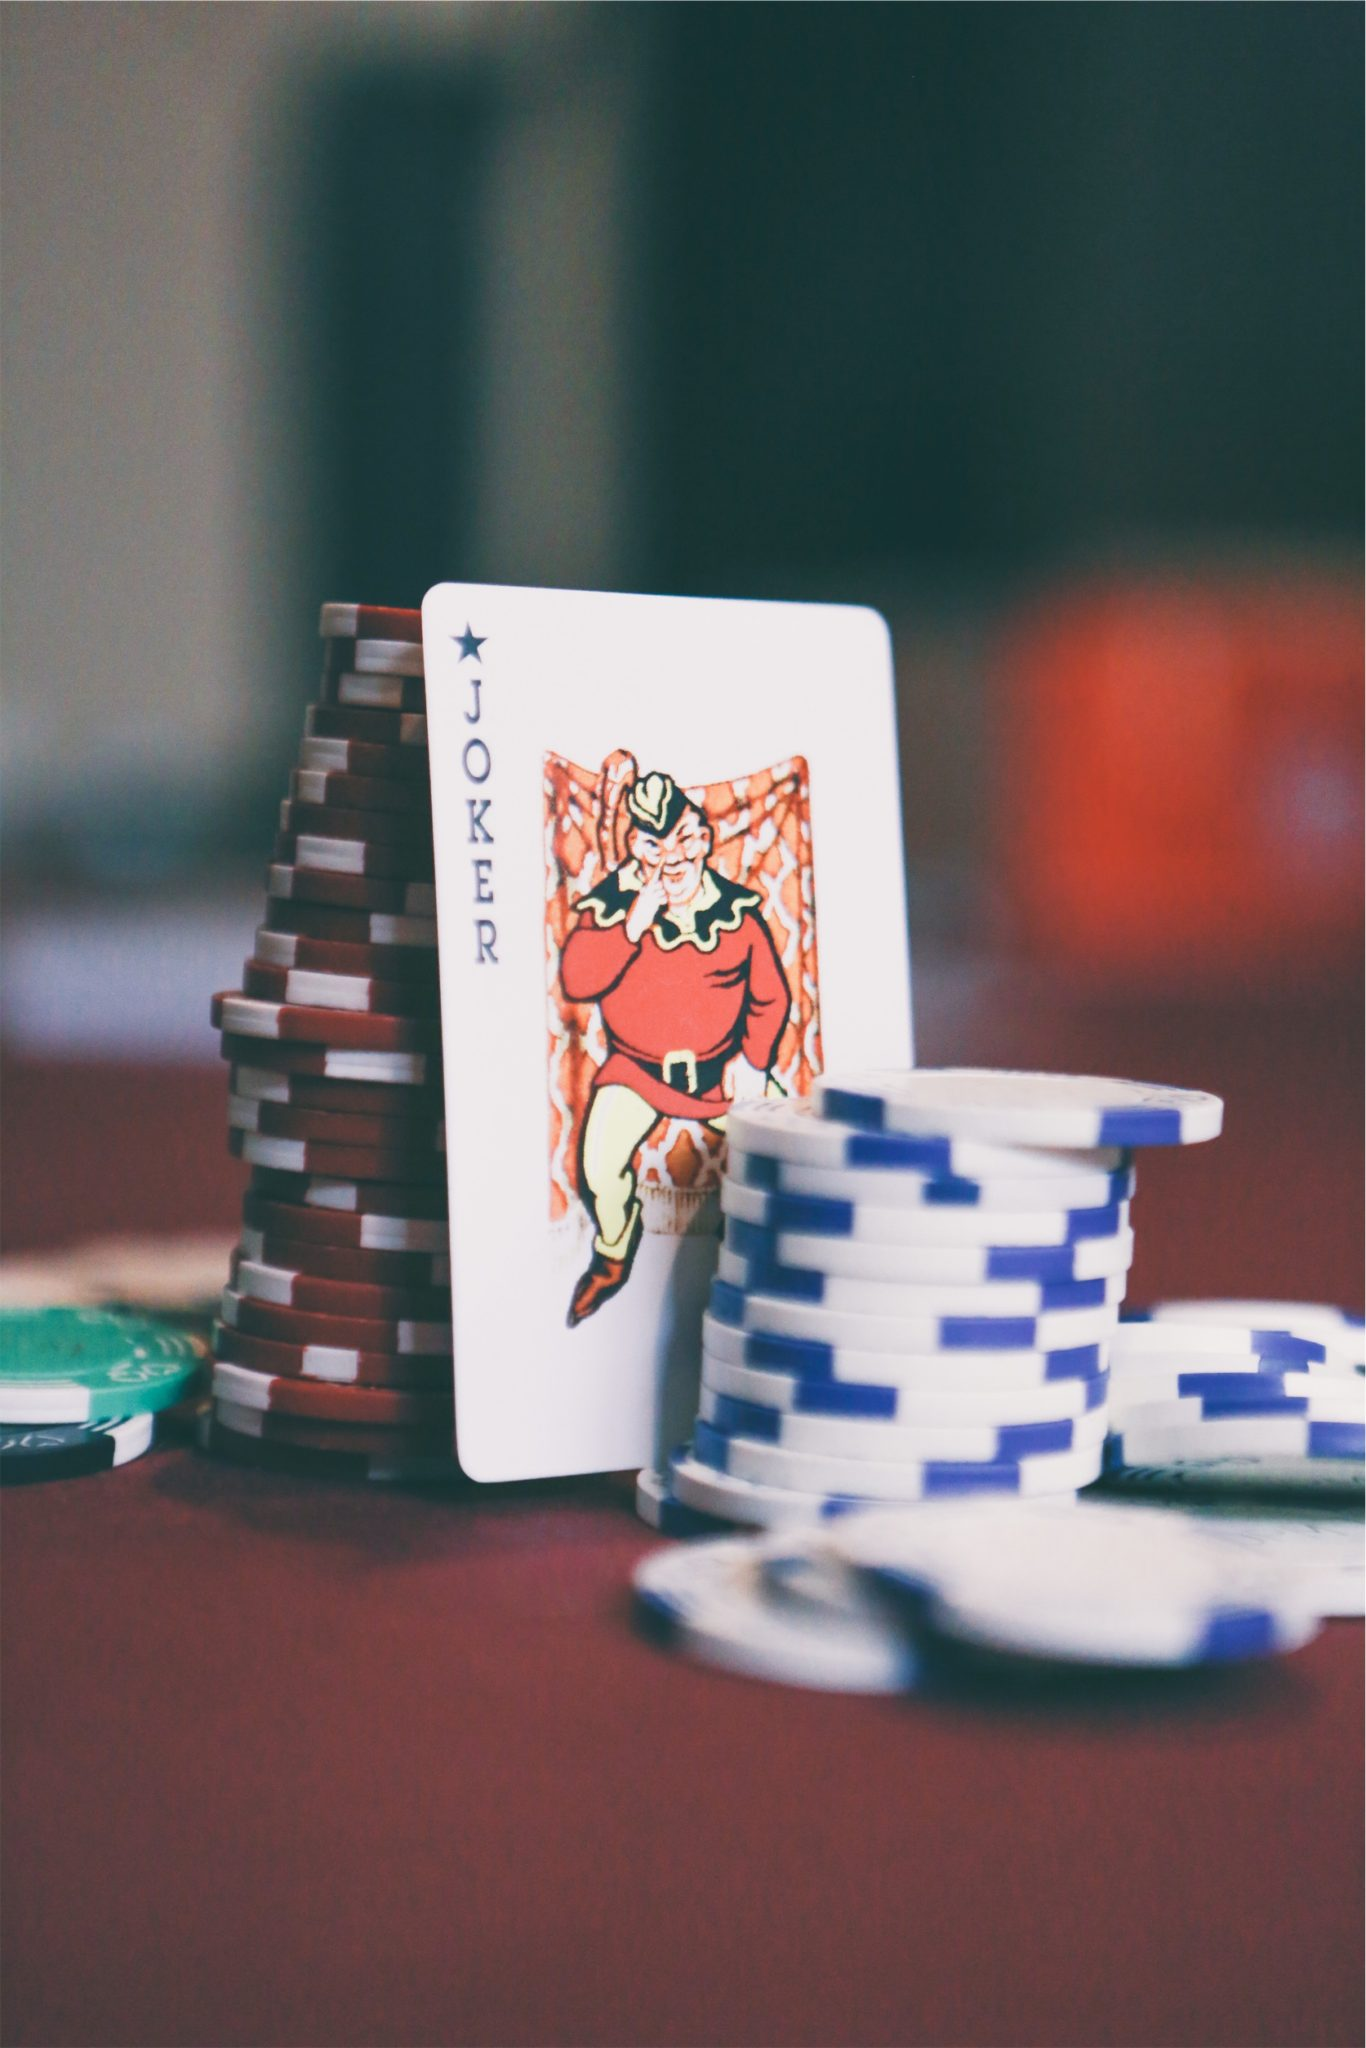 Joker card with stack of chips by Matthew Smith from stocksnap.io